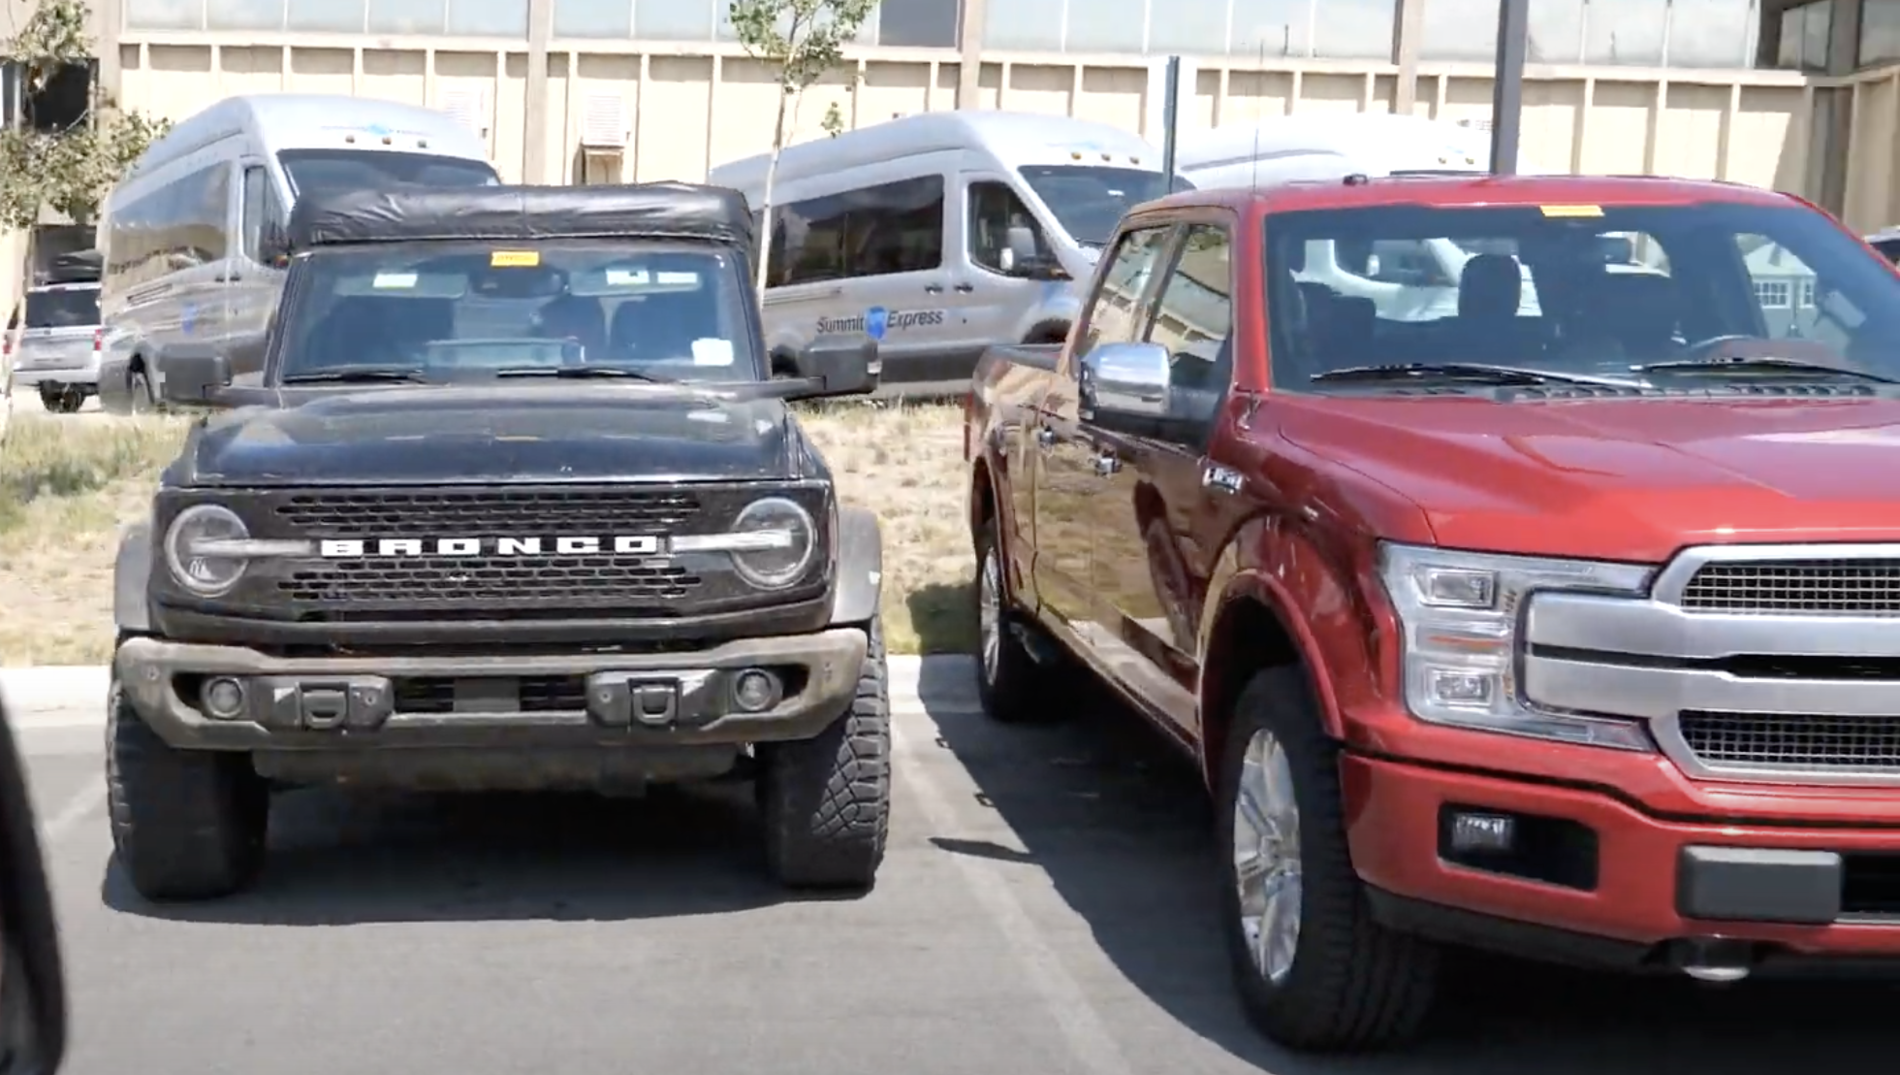 2021 Ford Bronco Sasquatch Size vs F-150 Comparison2.png